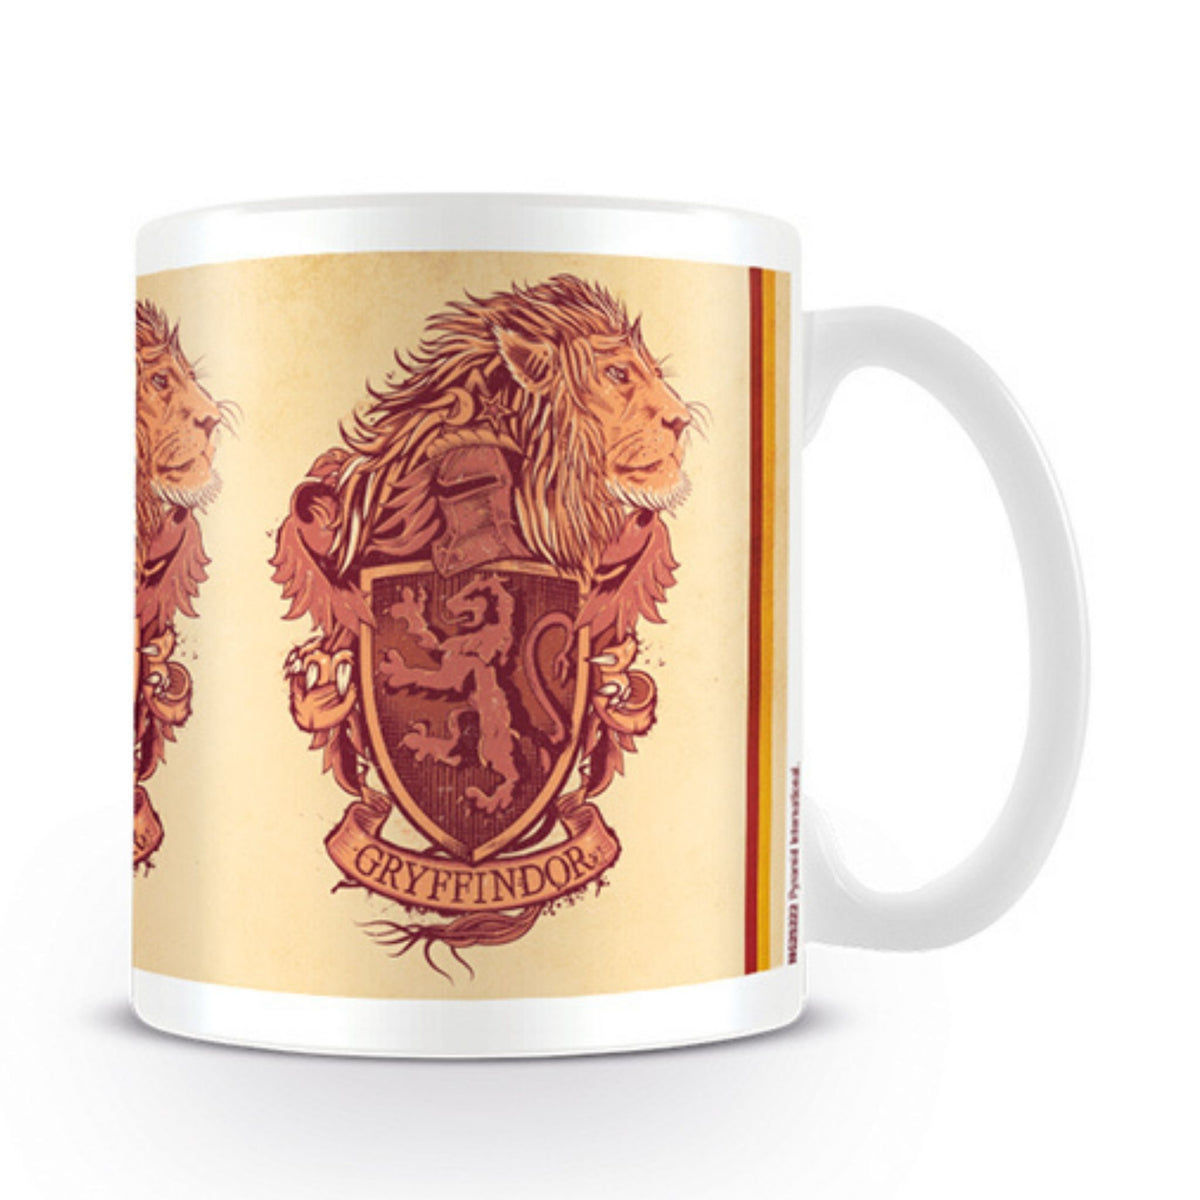 Harry Potter Hogwarts House Crest Mugs